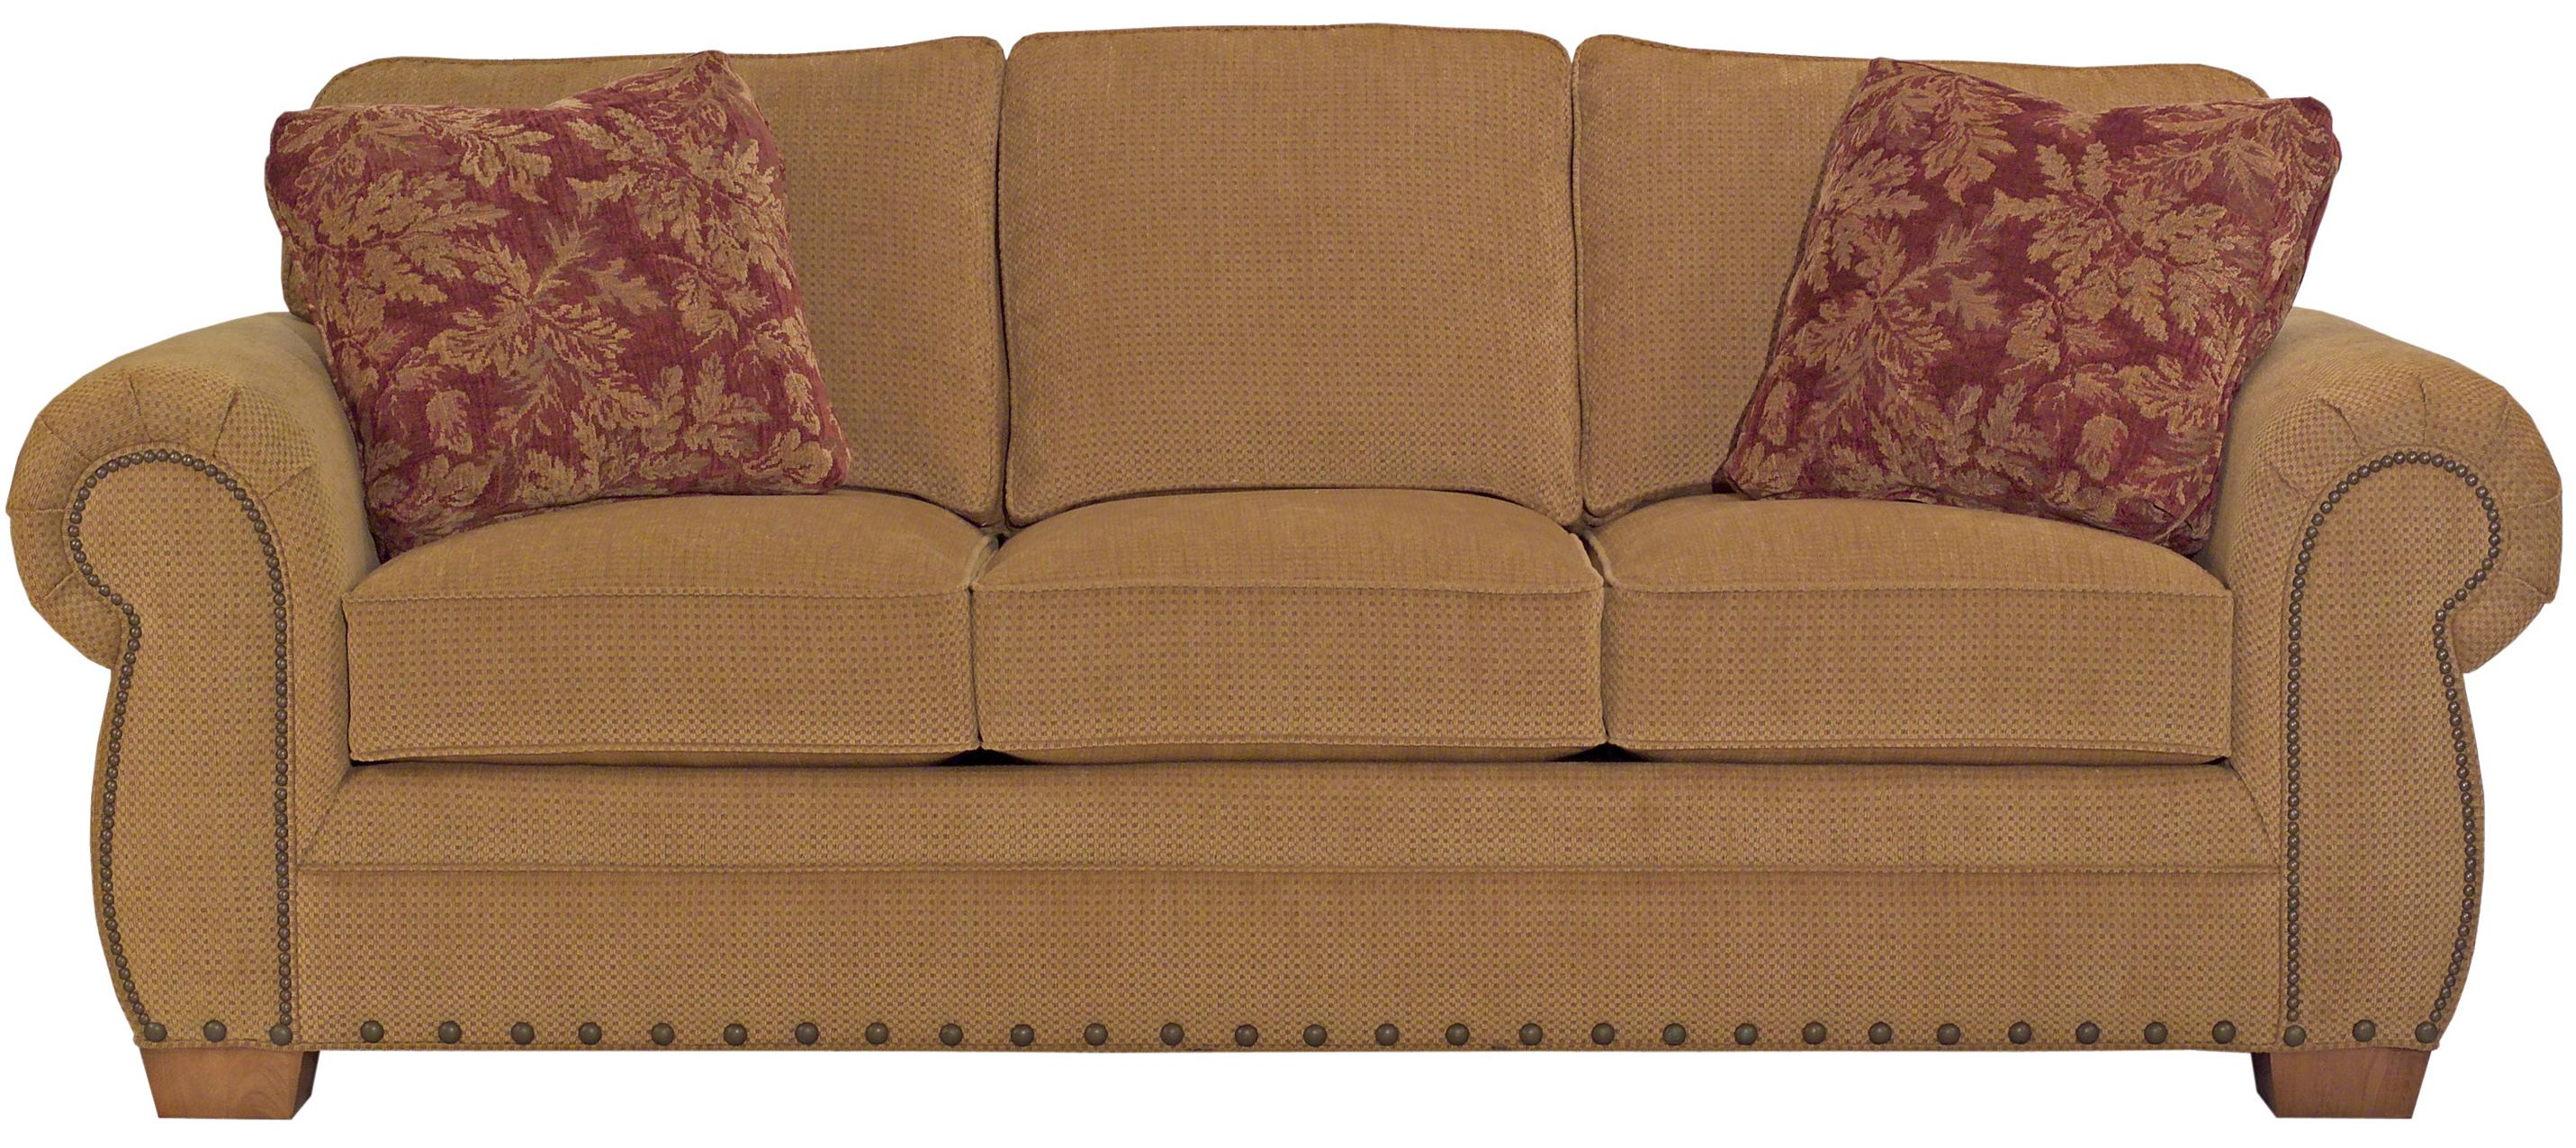 Broyhill Furniture Cambridge Casual Style Sofa - Item Number: 5054-3